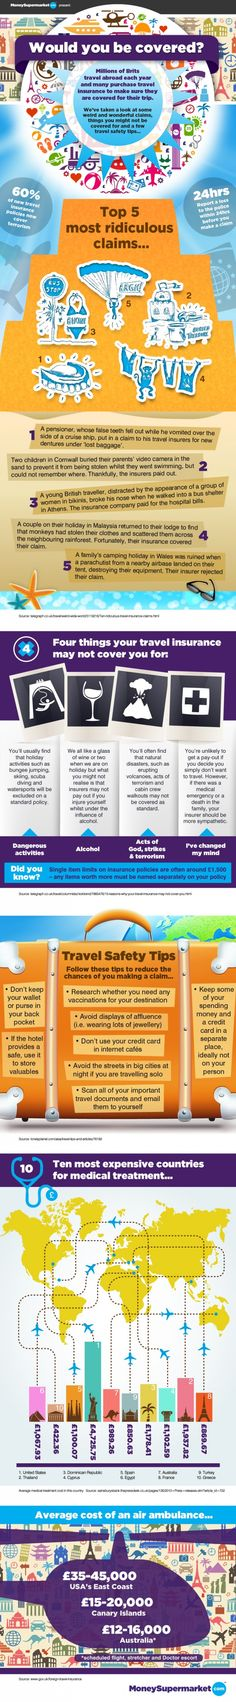 Infographic: Why Get Travel Insurance? #traveltips #budgettravel #travelsafety #travelinsurance